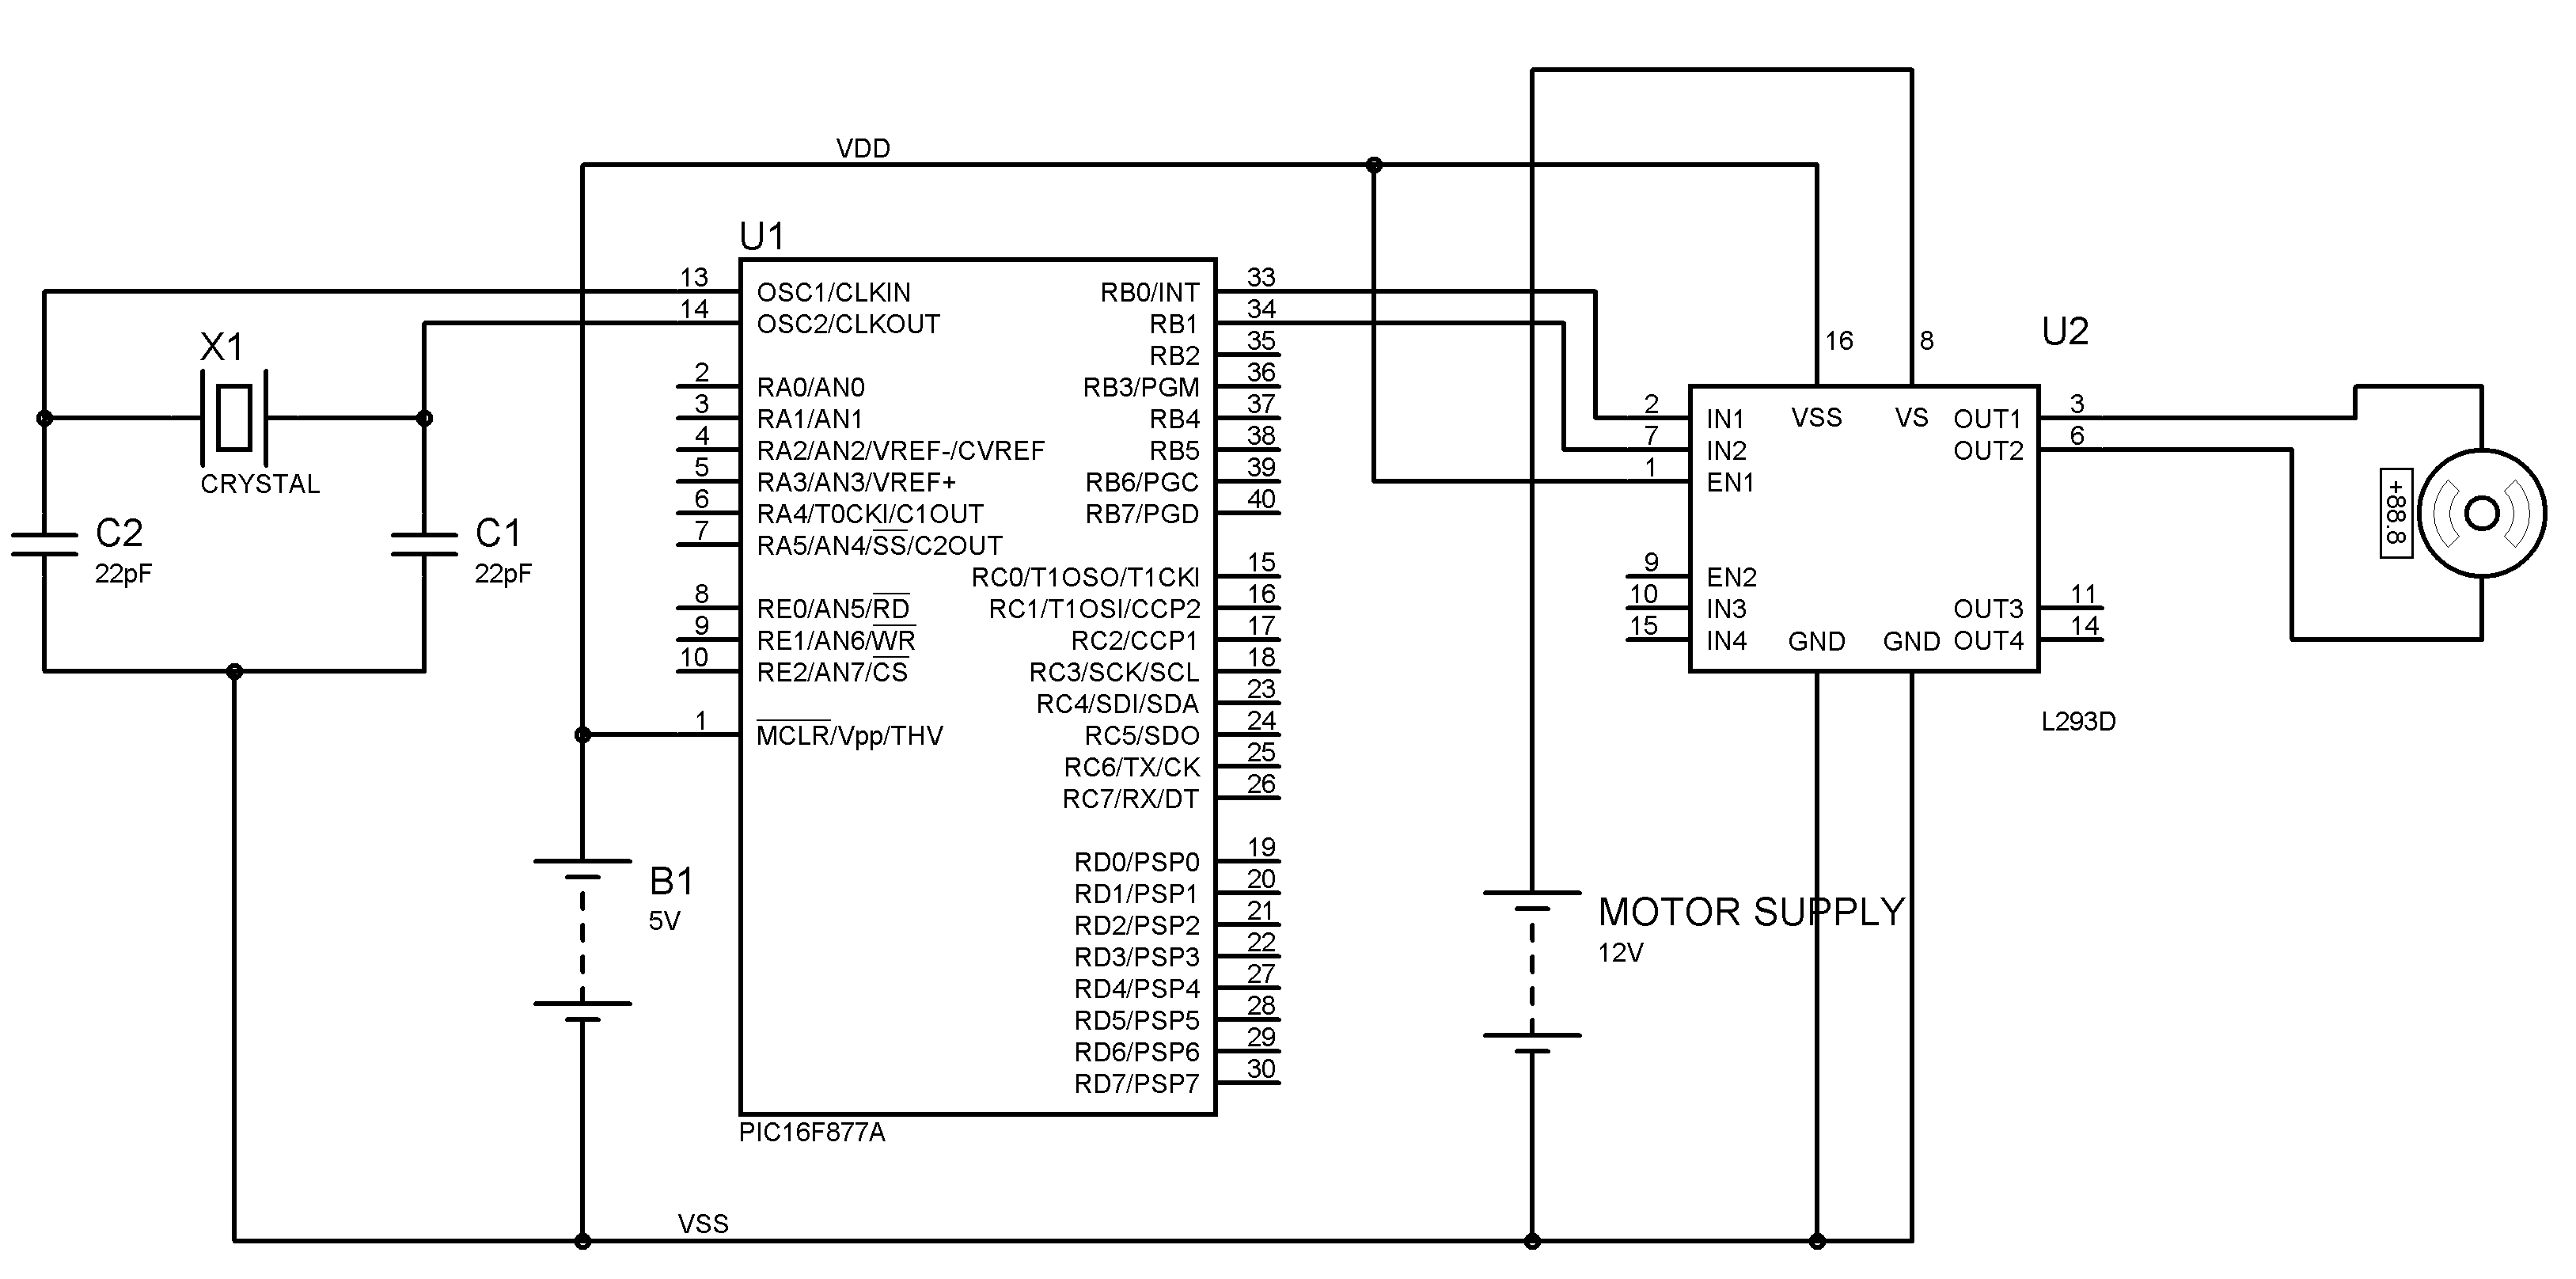 Interfacing Dc Motor With Pic Microcontroller Using L293d Mikroc Simple Control Circuit Http Wwwsimplecircuitsandprojects And Diagram